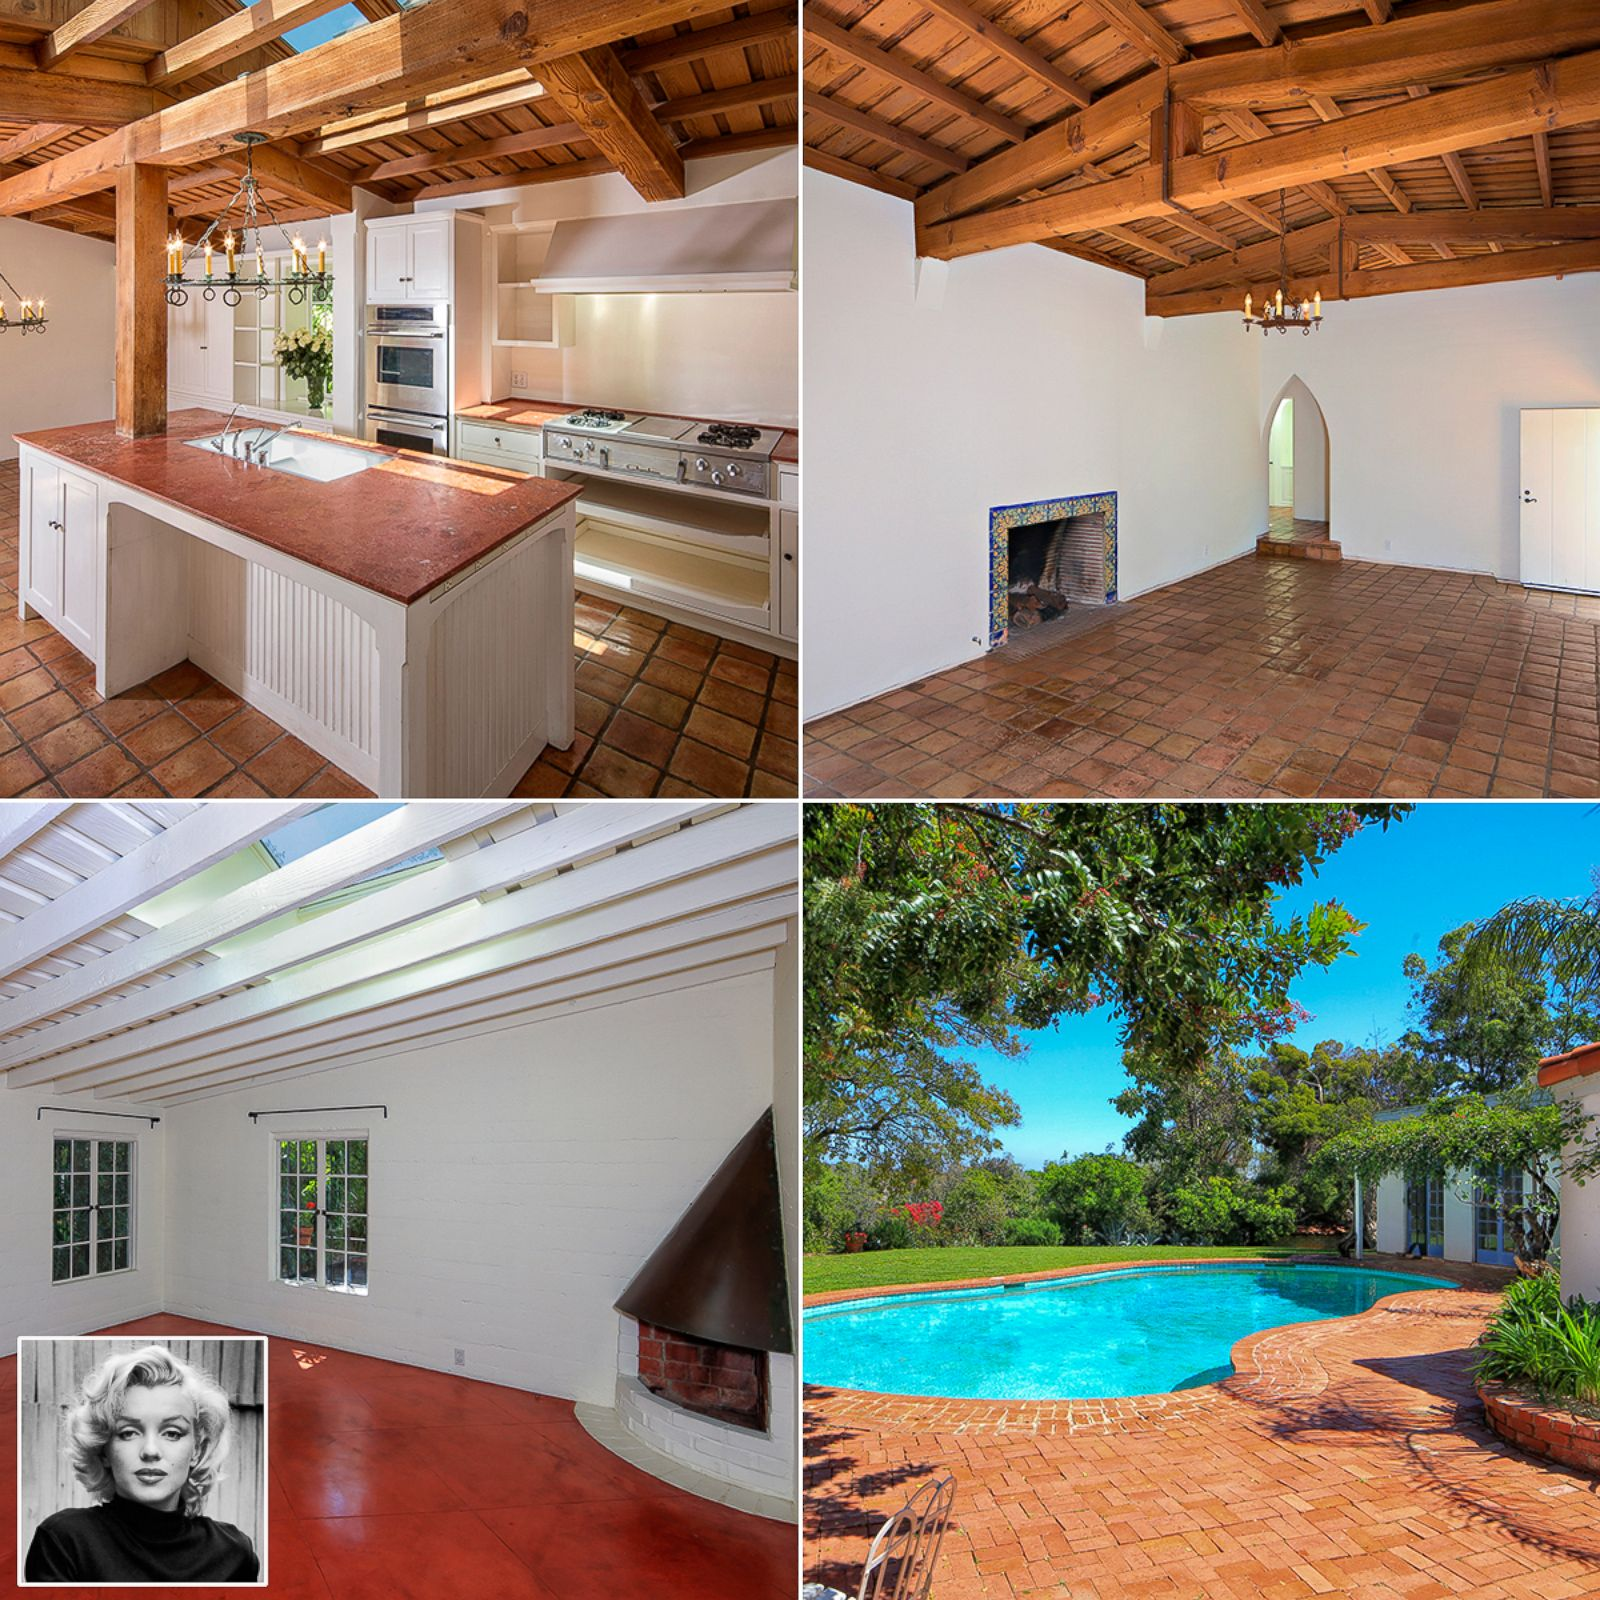 Marilyn Monroe Home marilyn monroe's brentwood home listed for $6.9 million - abc news